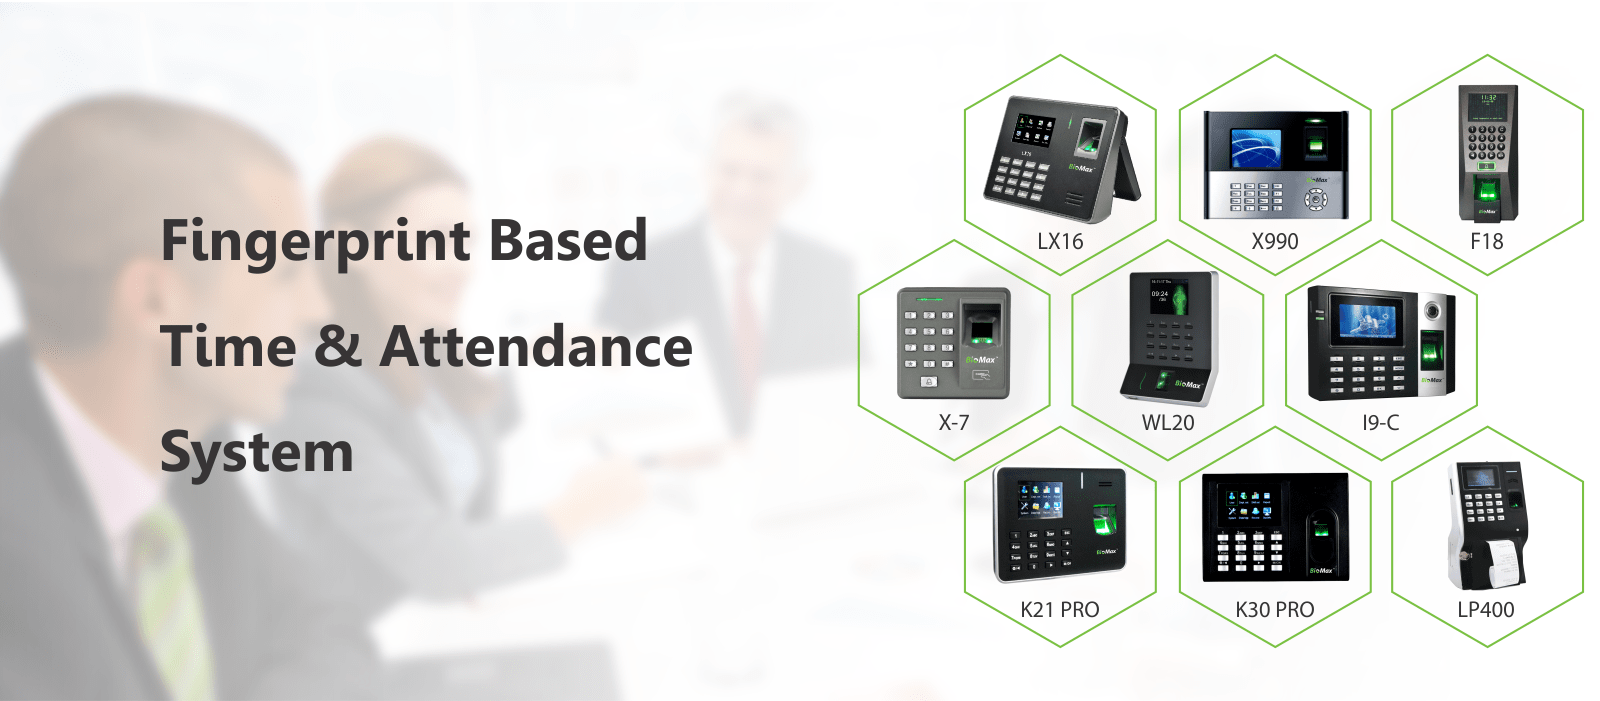 Fingerprint Based Time & Attendance System